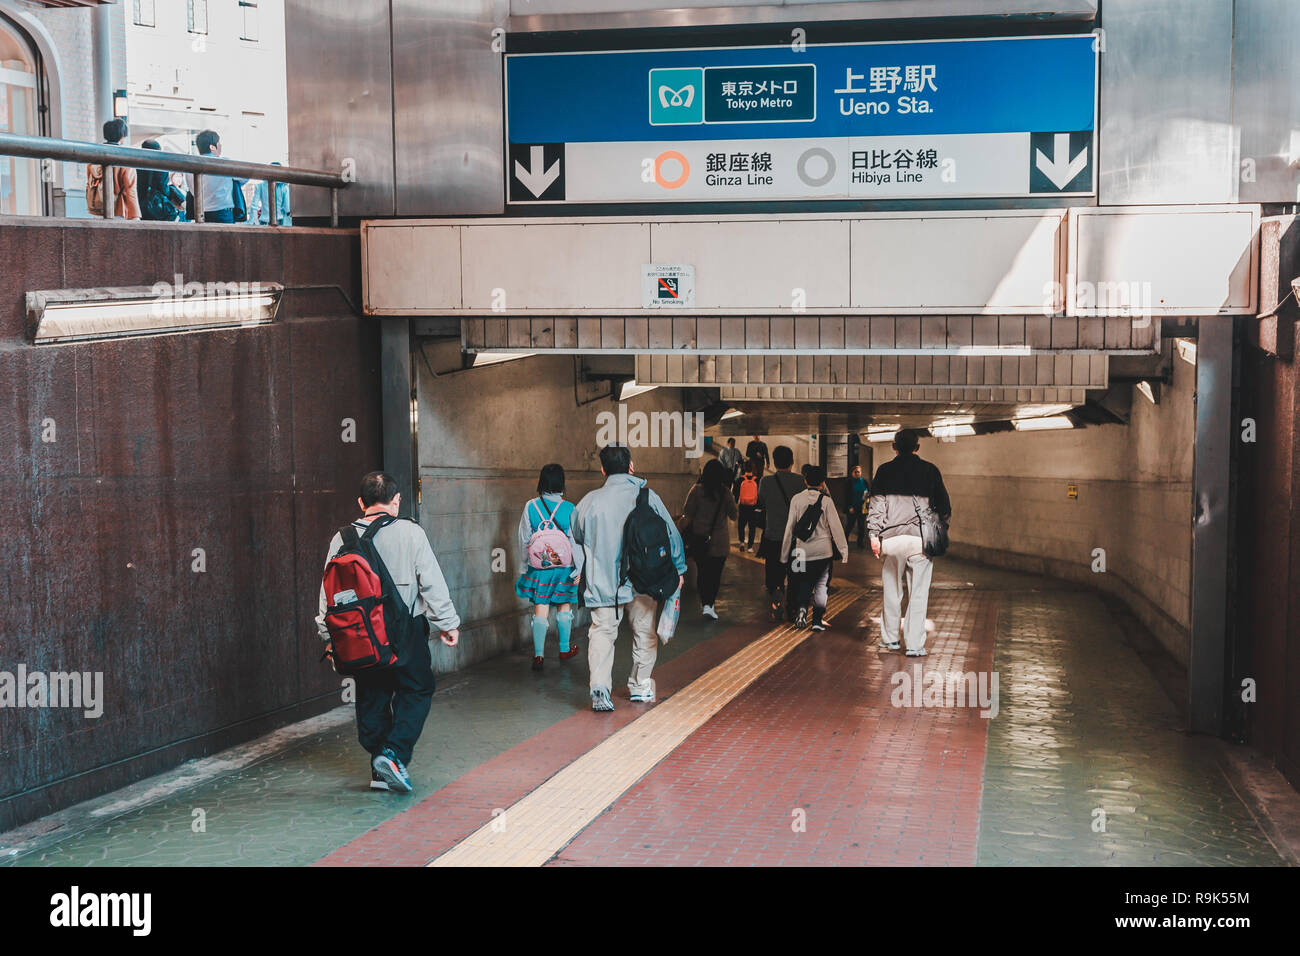 People entering Ueno subway station through entrance carrying their backpack Stock Photo